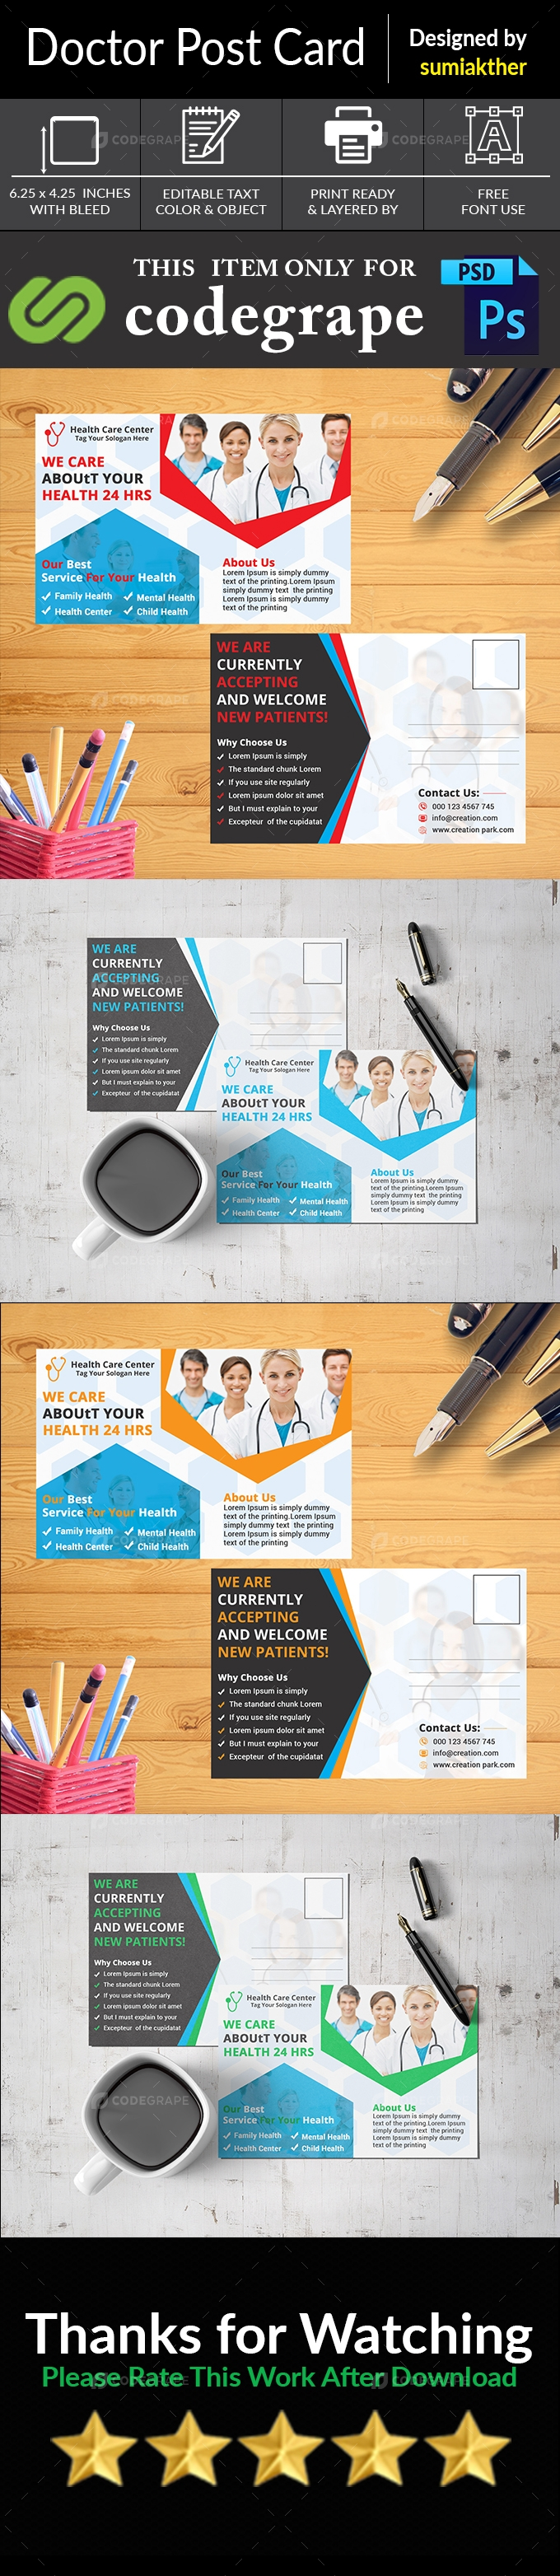 Corporate Doctor Post Card